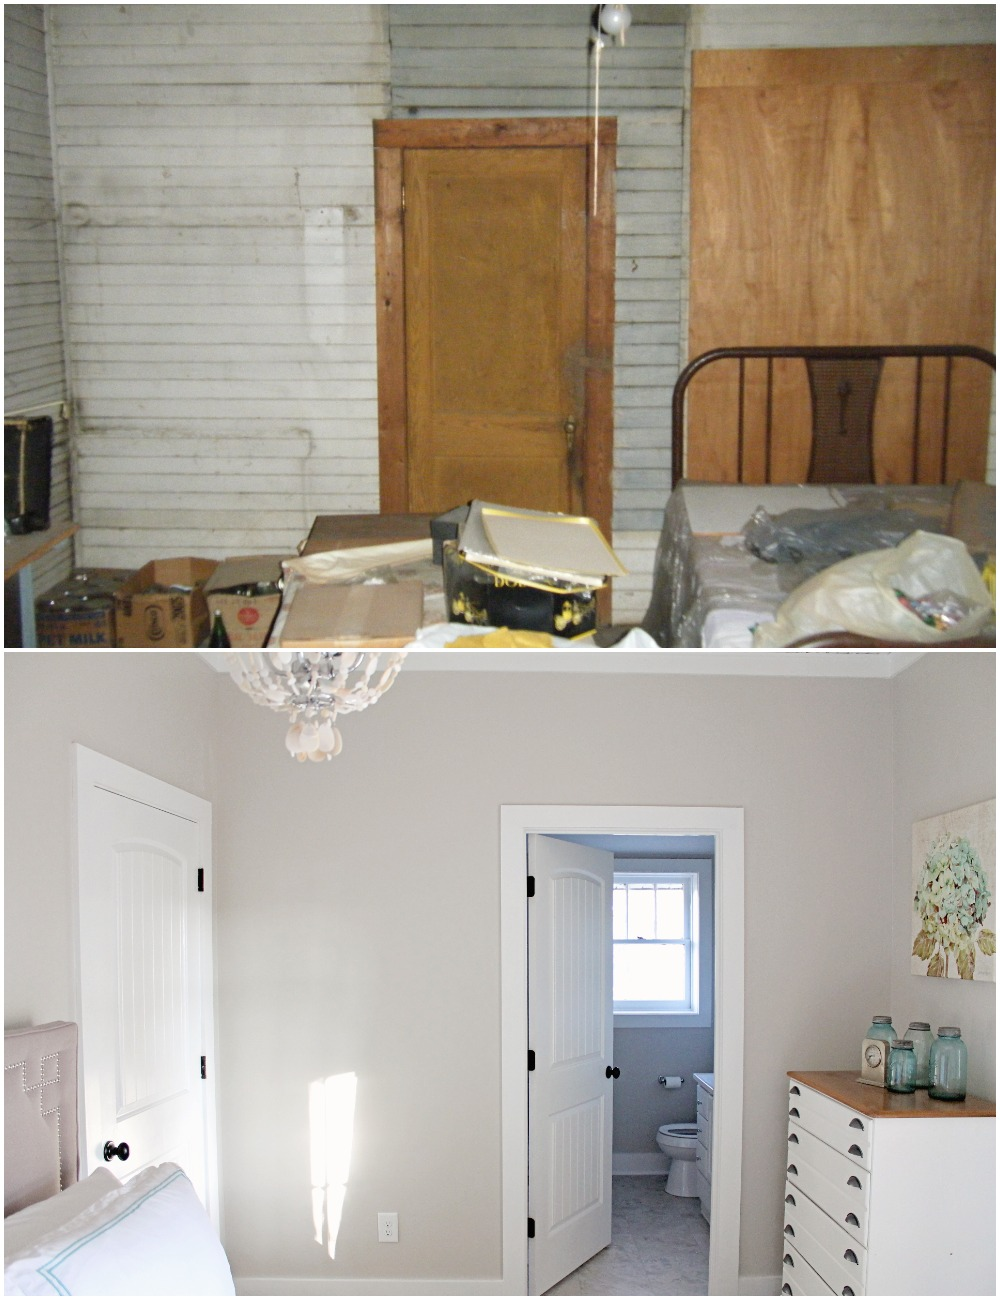 Elizabeth Burns Design  Budget-Friendly Fixer Upper Farmhouse Before and After House Flip - DIY Guest Bedroom with Aqua Accents - Sherwin Williams Agreeable Gray (5).jpg